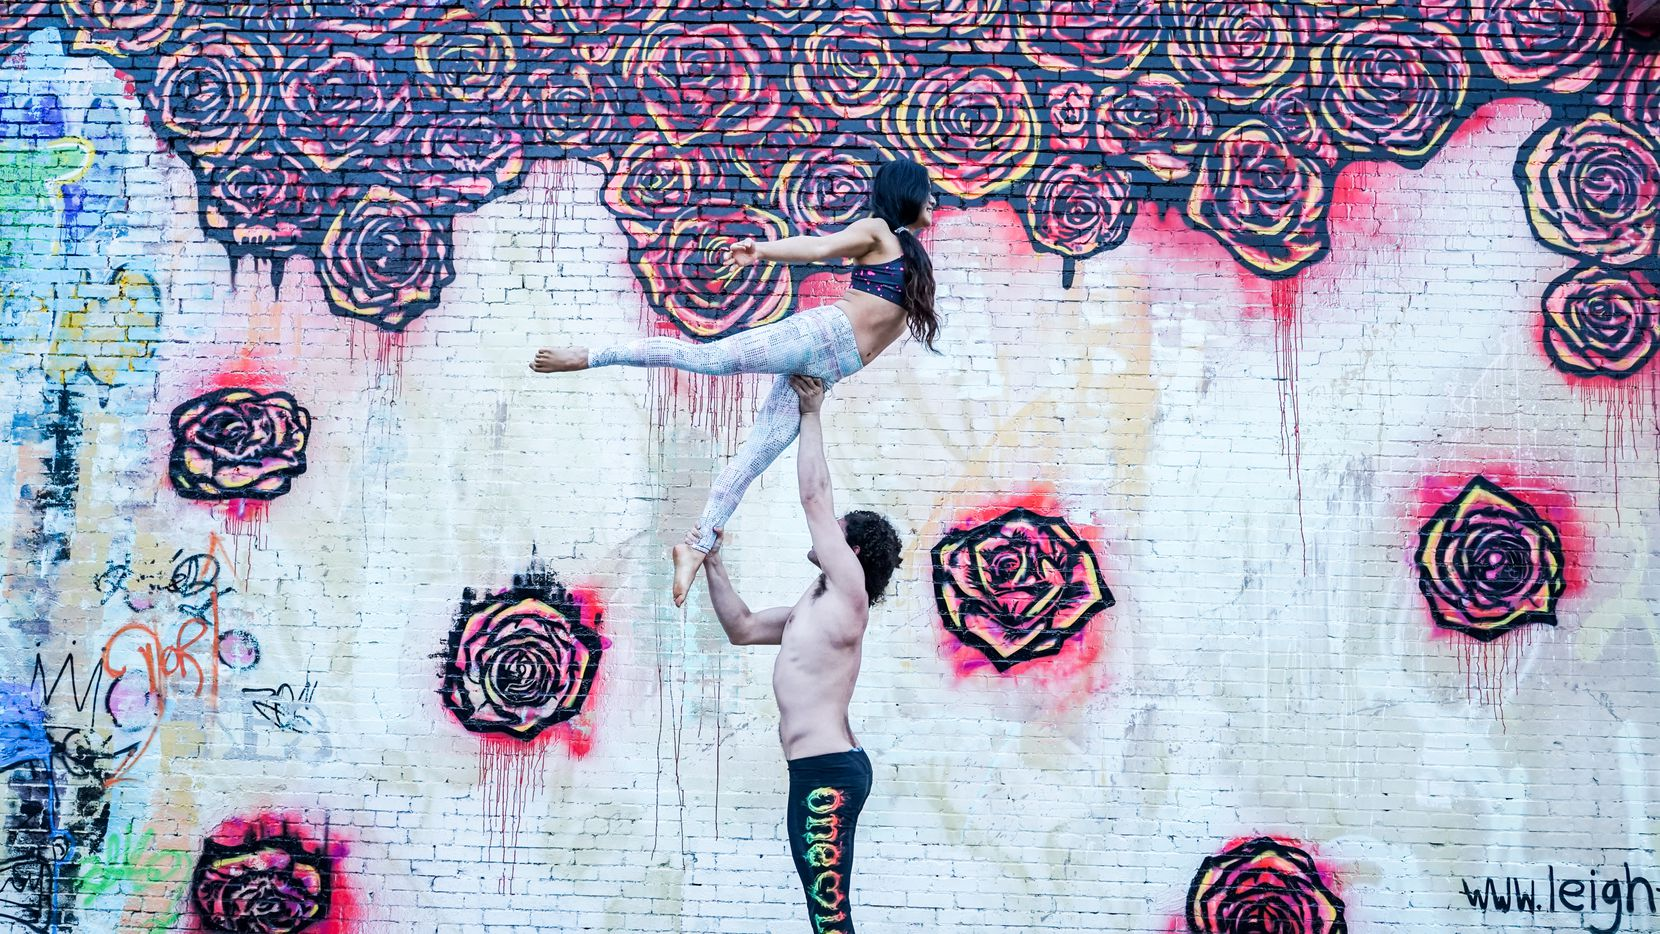 The murals of Deep Ellum provide a cool backdrop for AcroYoga for Max Lowenstein and Liz Kong